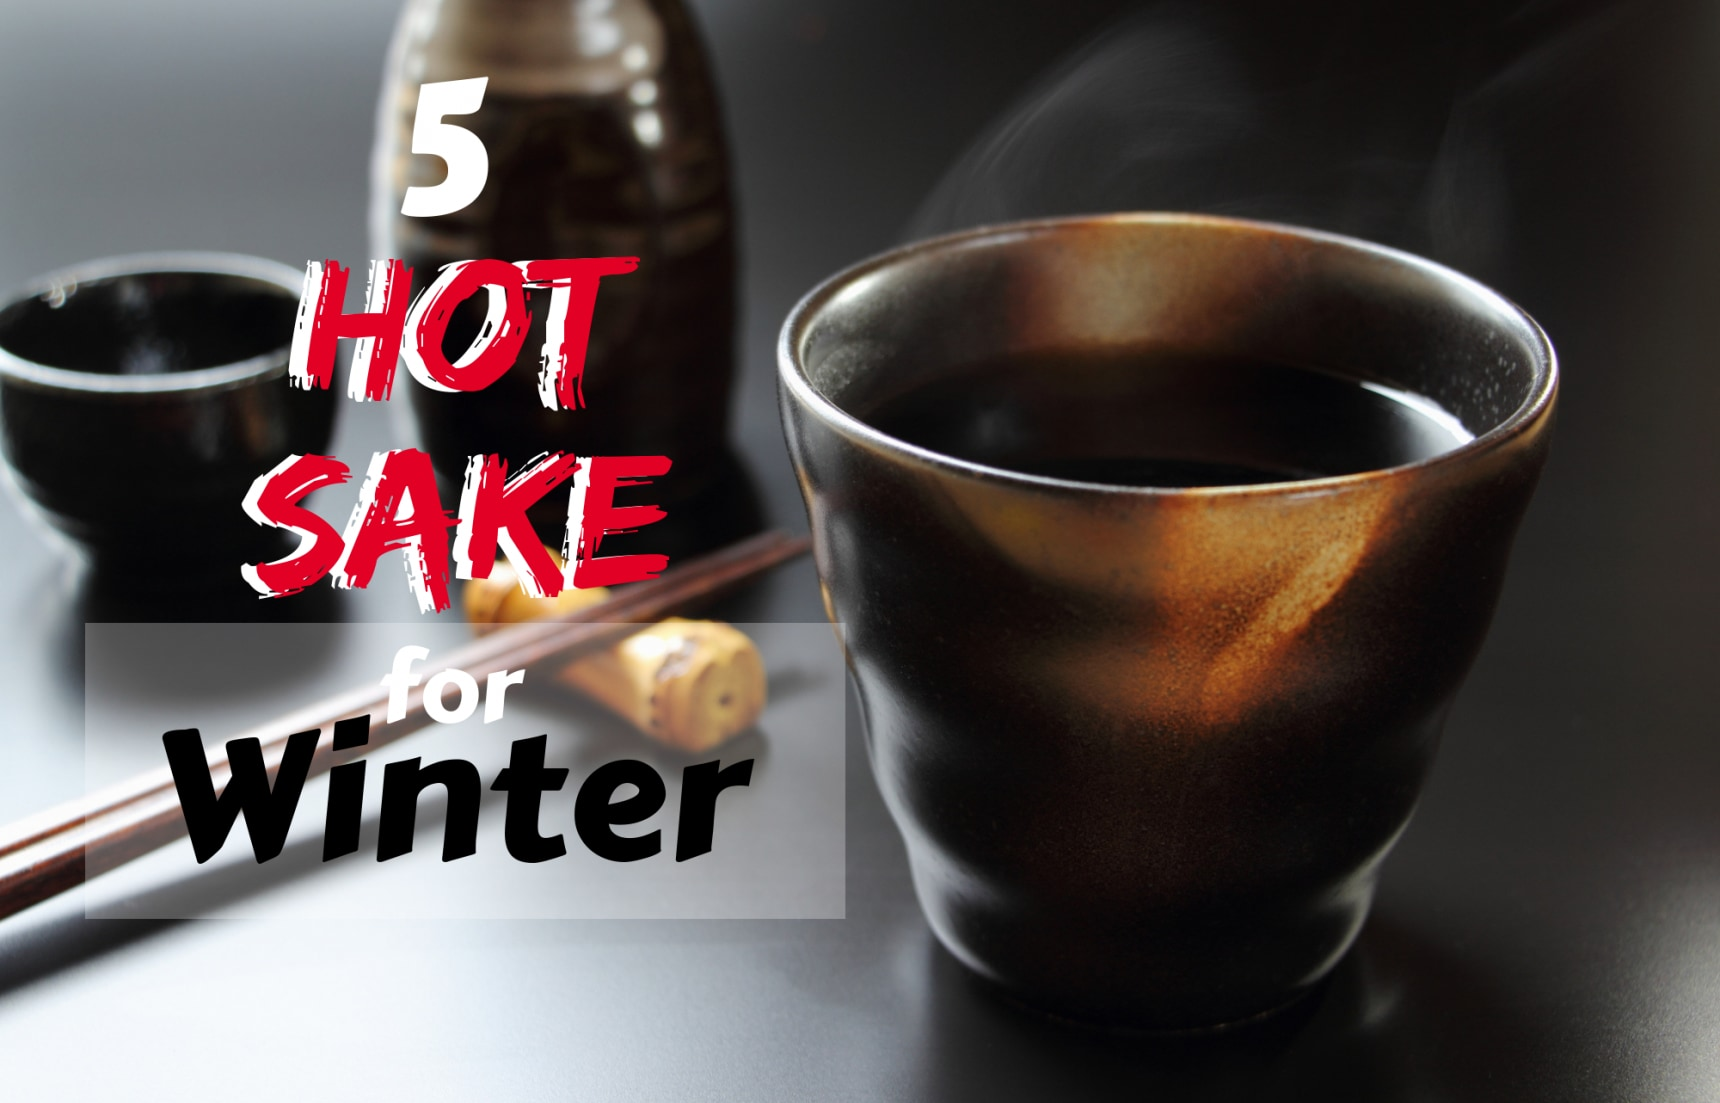 5 Hot Sake for Winter!